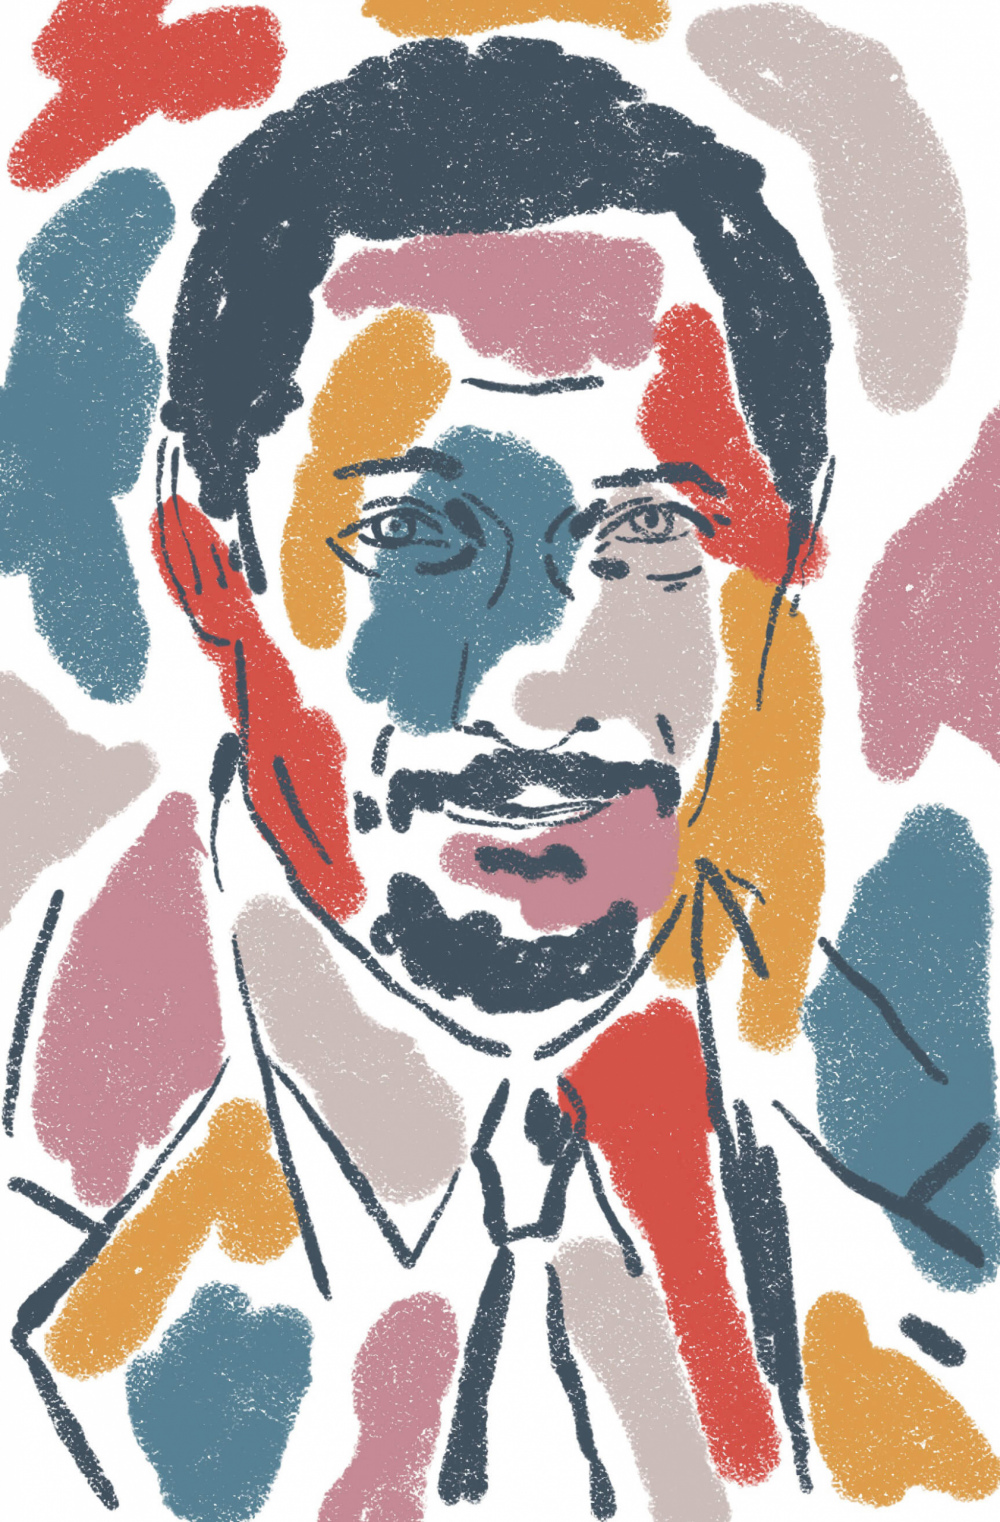 A colorful mosaic portrait of Percival Everett.